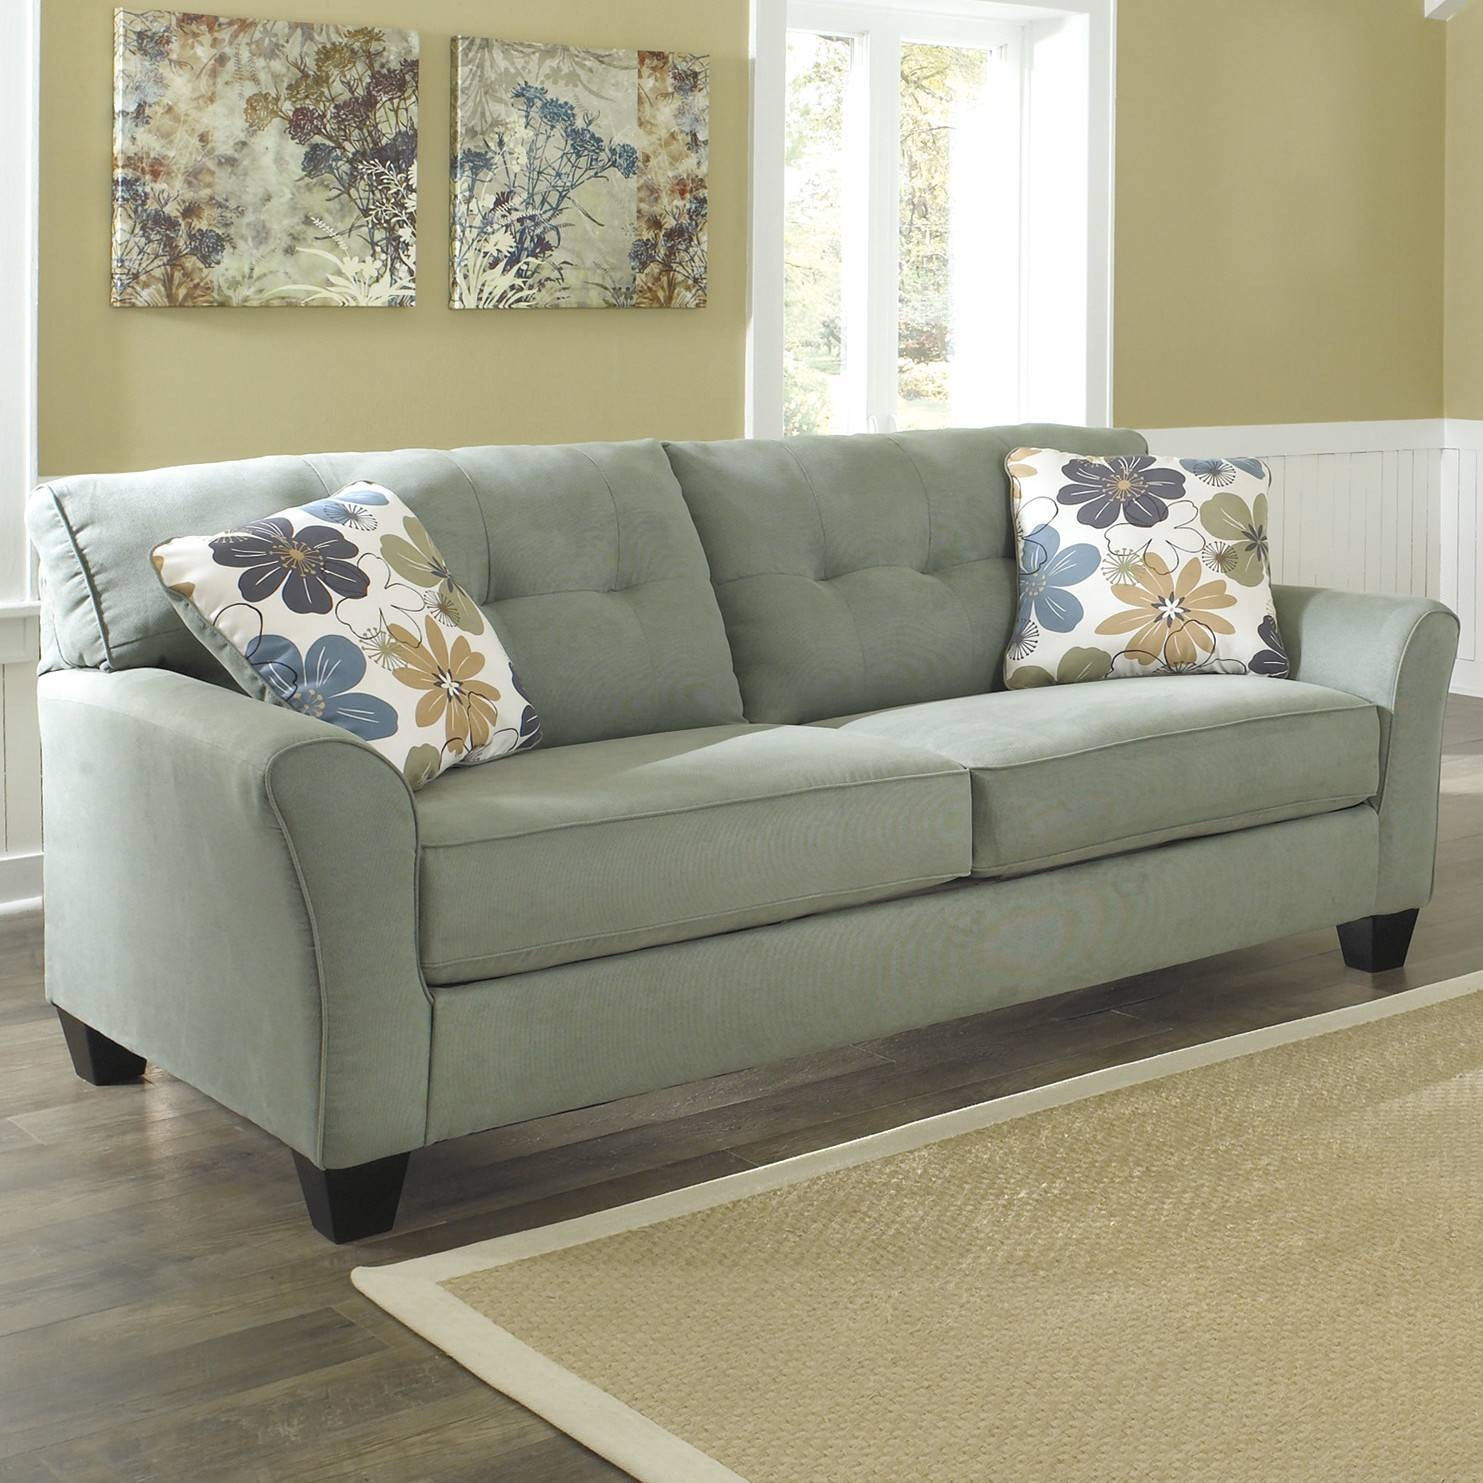 Your Guide To Space Saver Sofas For Tiny Spaces inside Small Scale Sofas (Image 15 of 15)